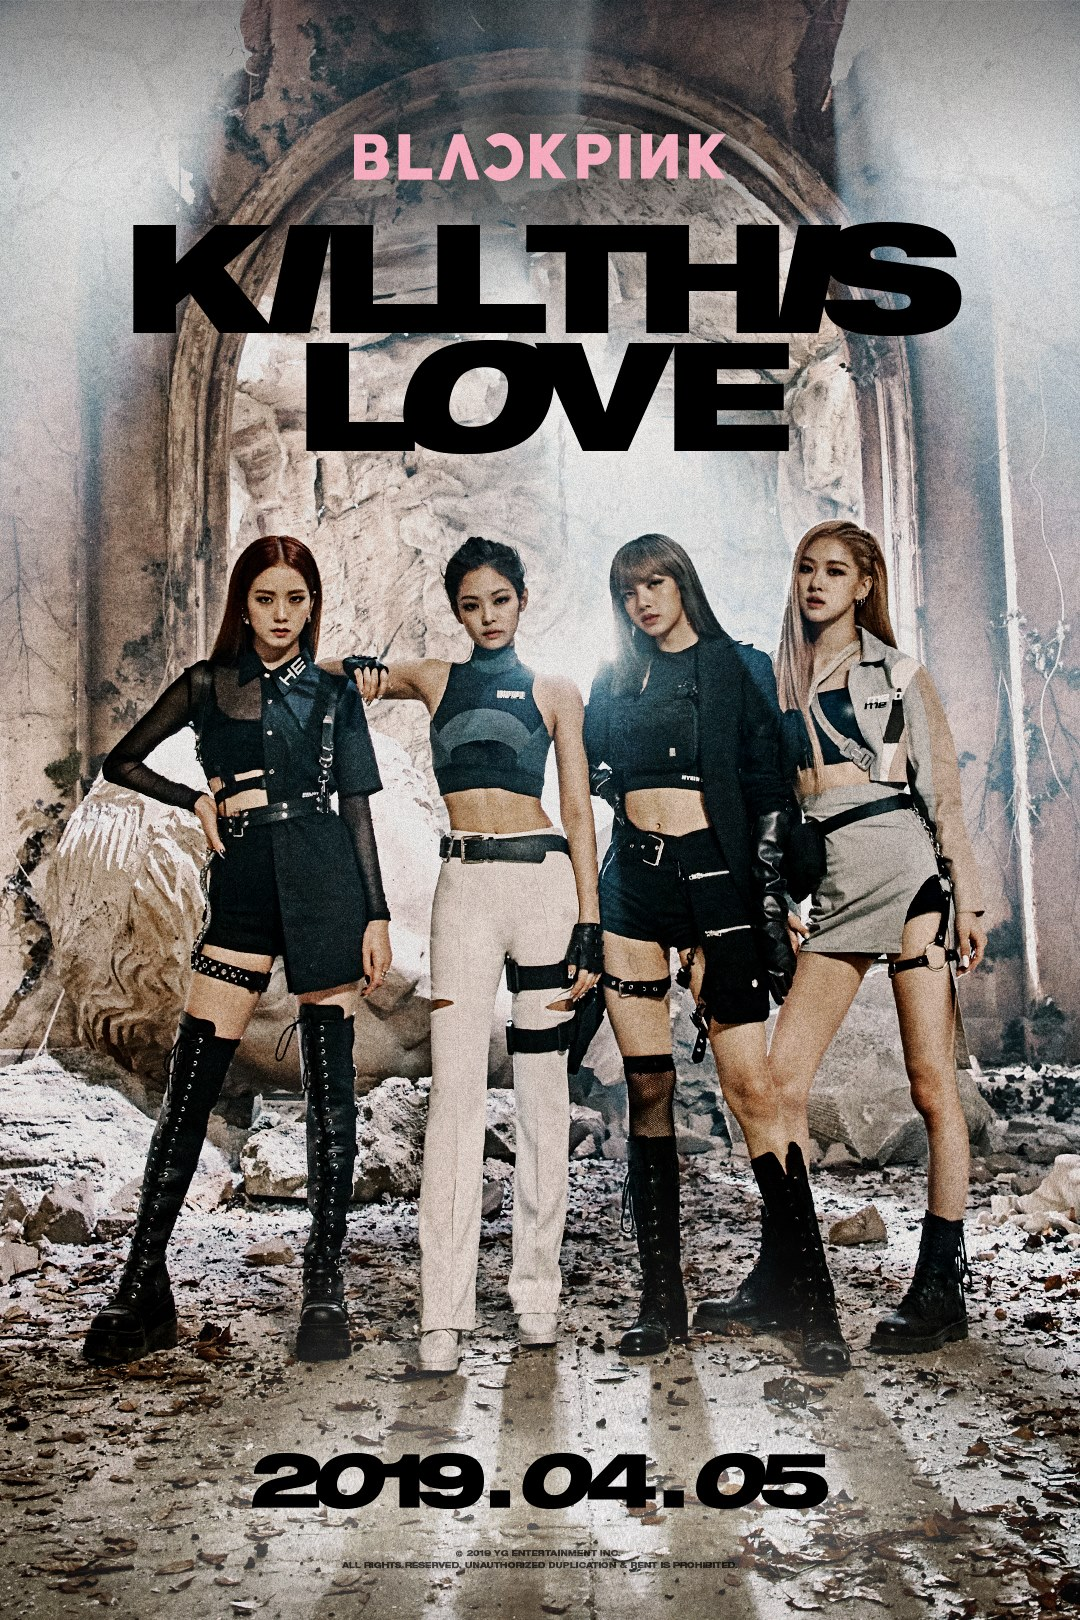 BLACKPINK's Got You with Kill This Love — The Kraze